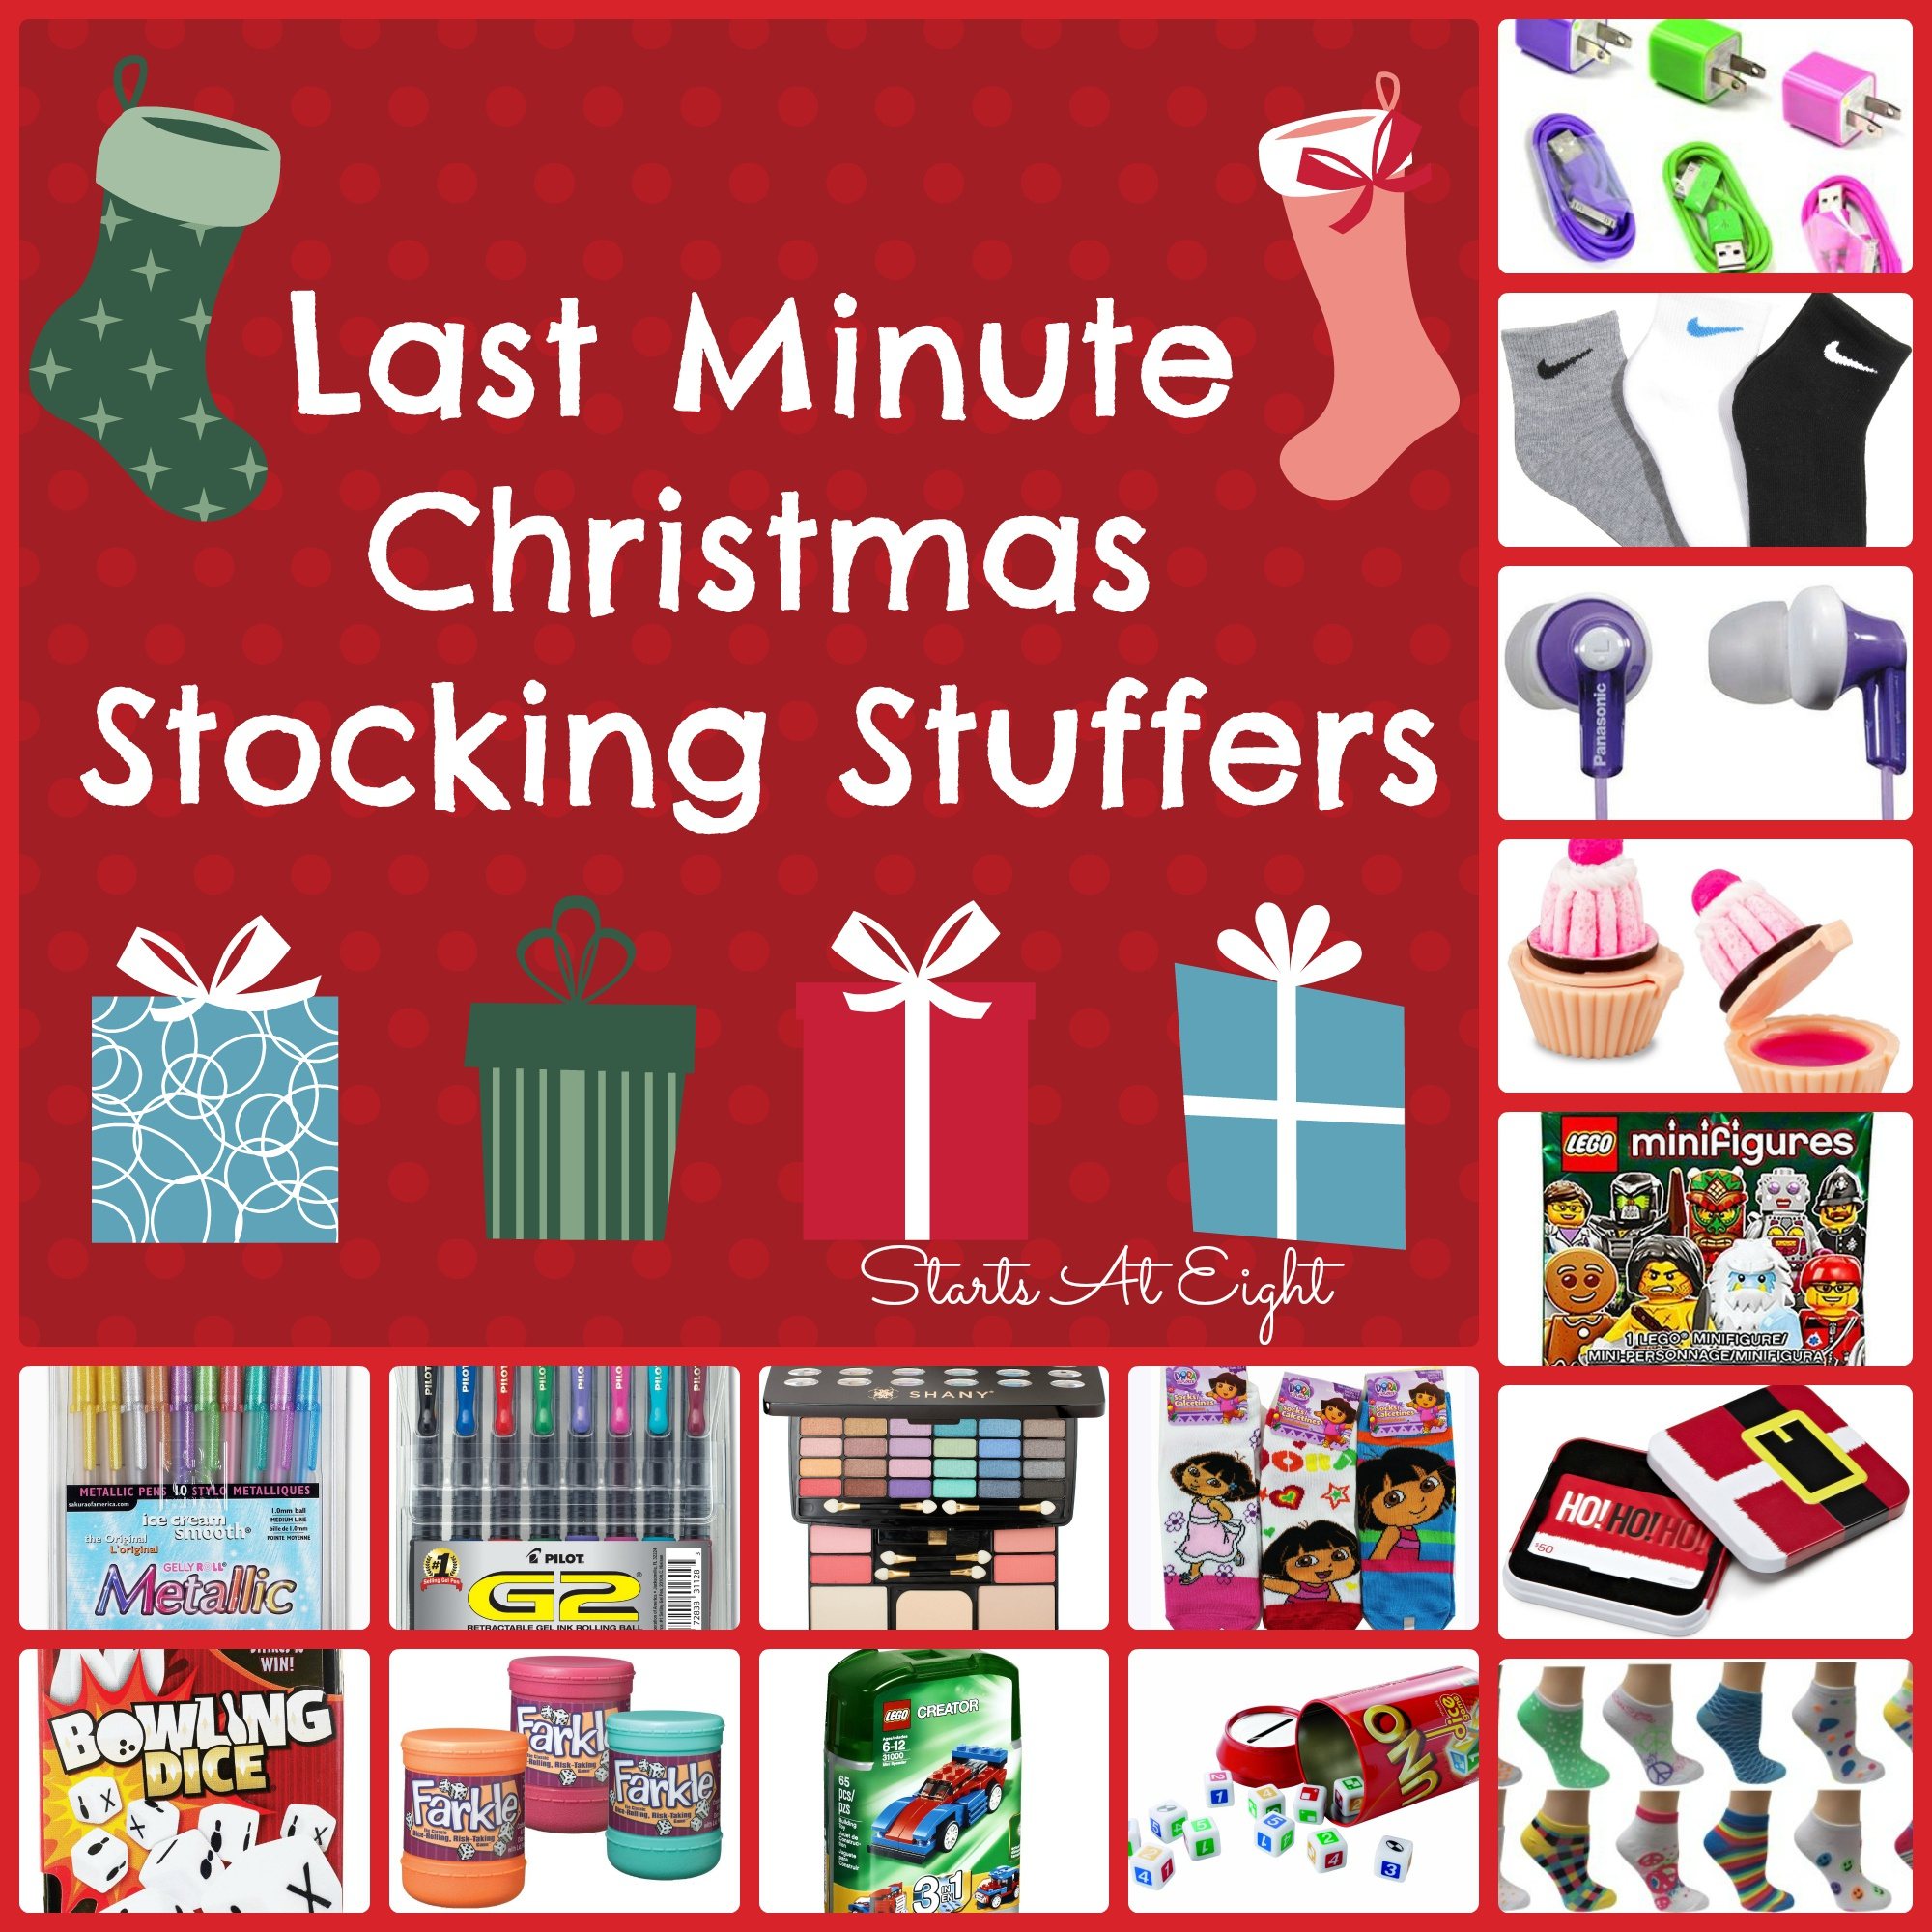 Last Minute Christmas Stocking Stuffers